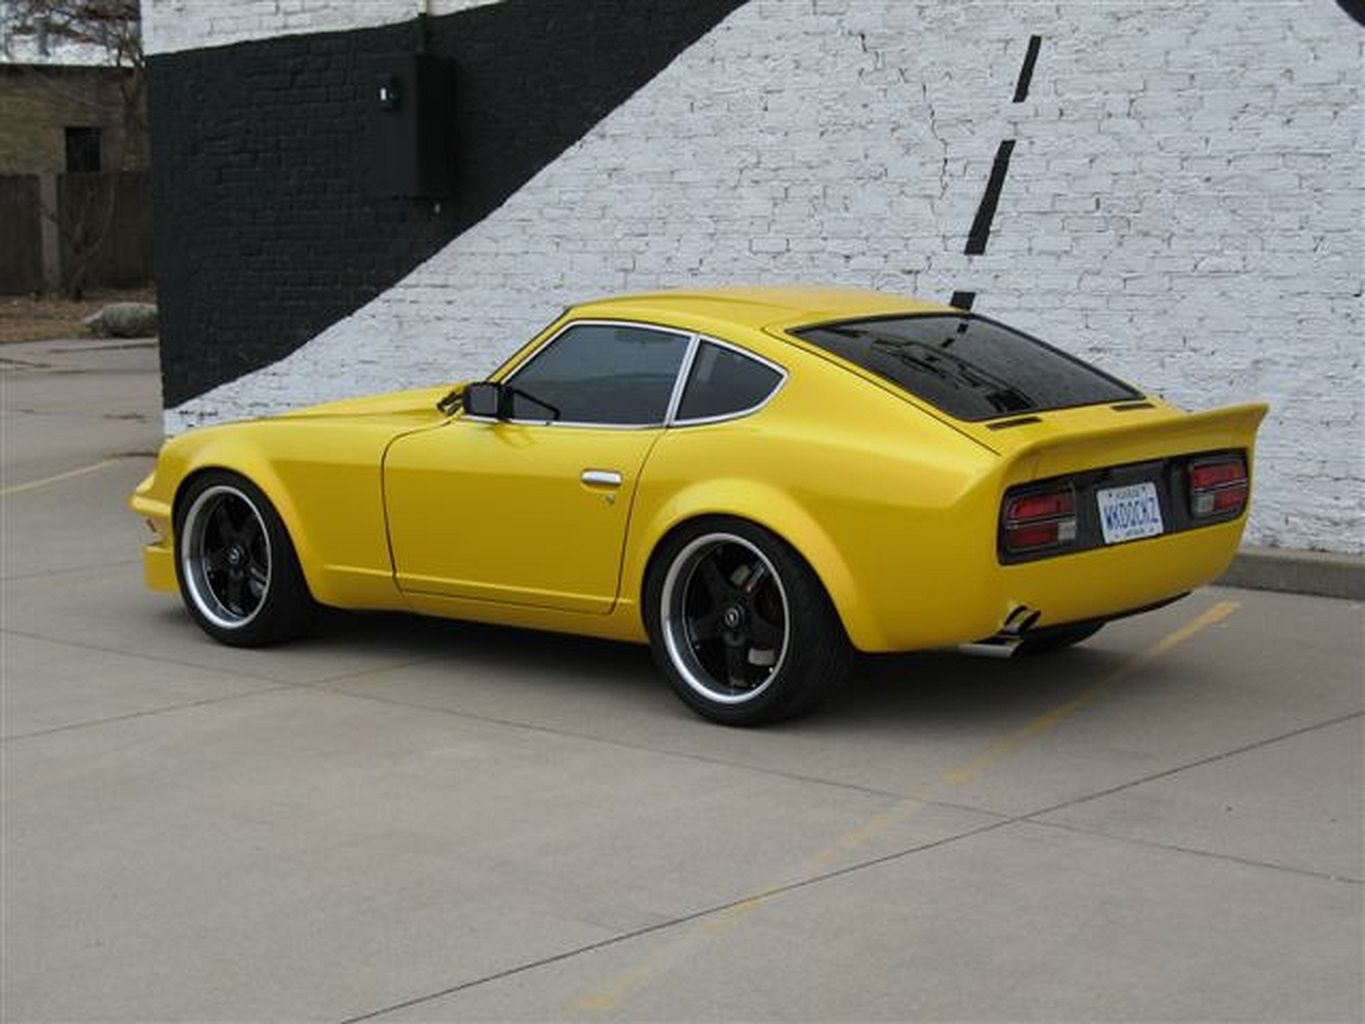 Best Datsun Z Cars Image Awesome | Car images, Cars and Datsun 240z